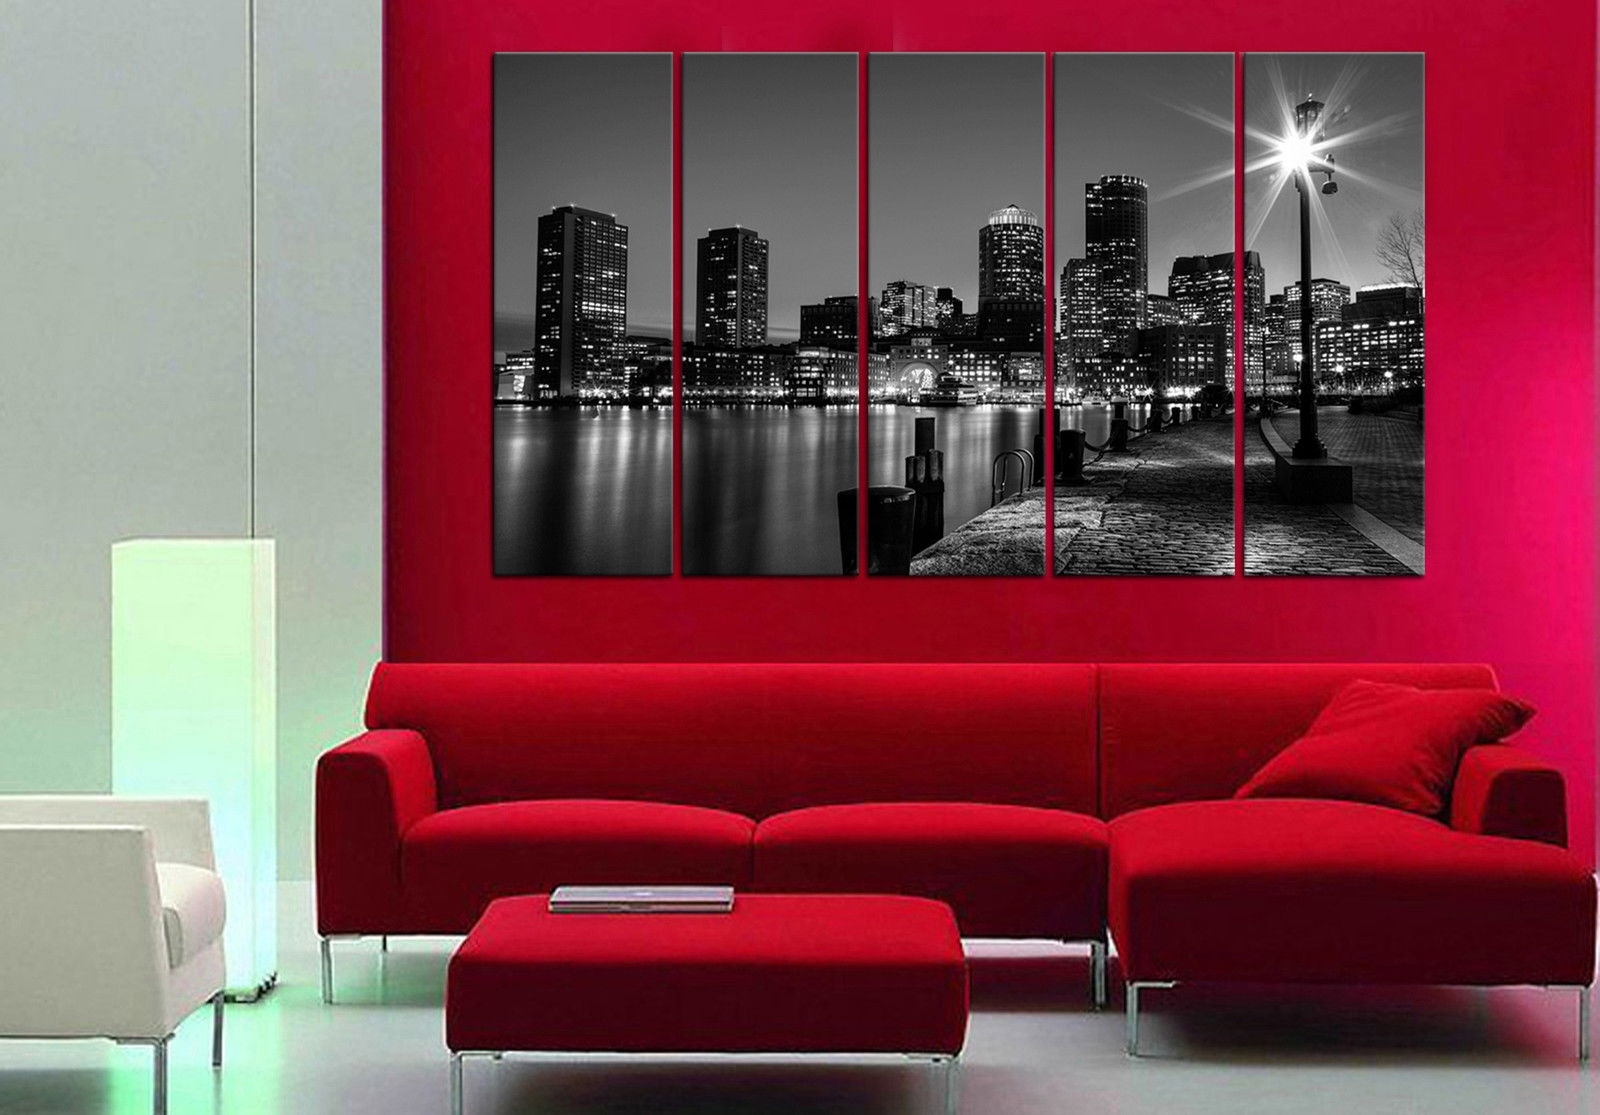 Boston Night 5 Piece Mounted Fiber Board Canvas Wall Art/better Than Pertaining To Current Boston Wall Art (View 12 of 20)